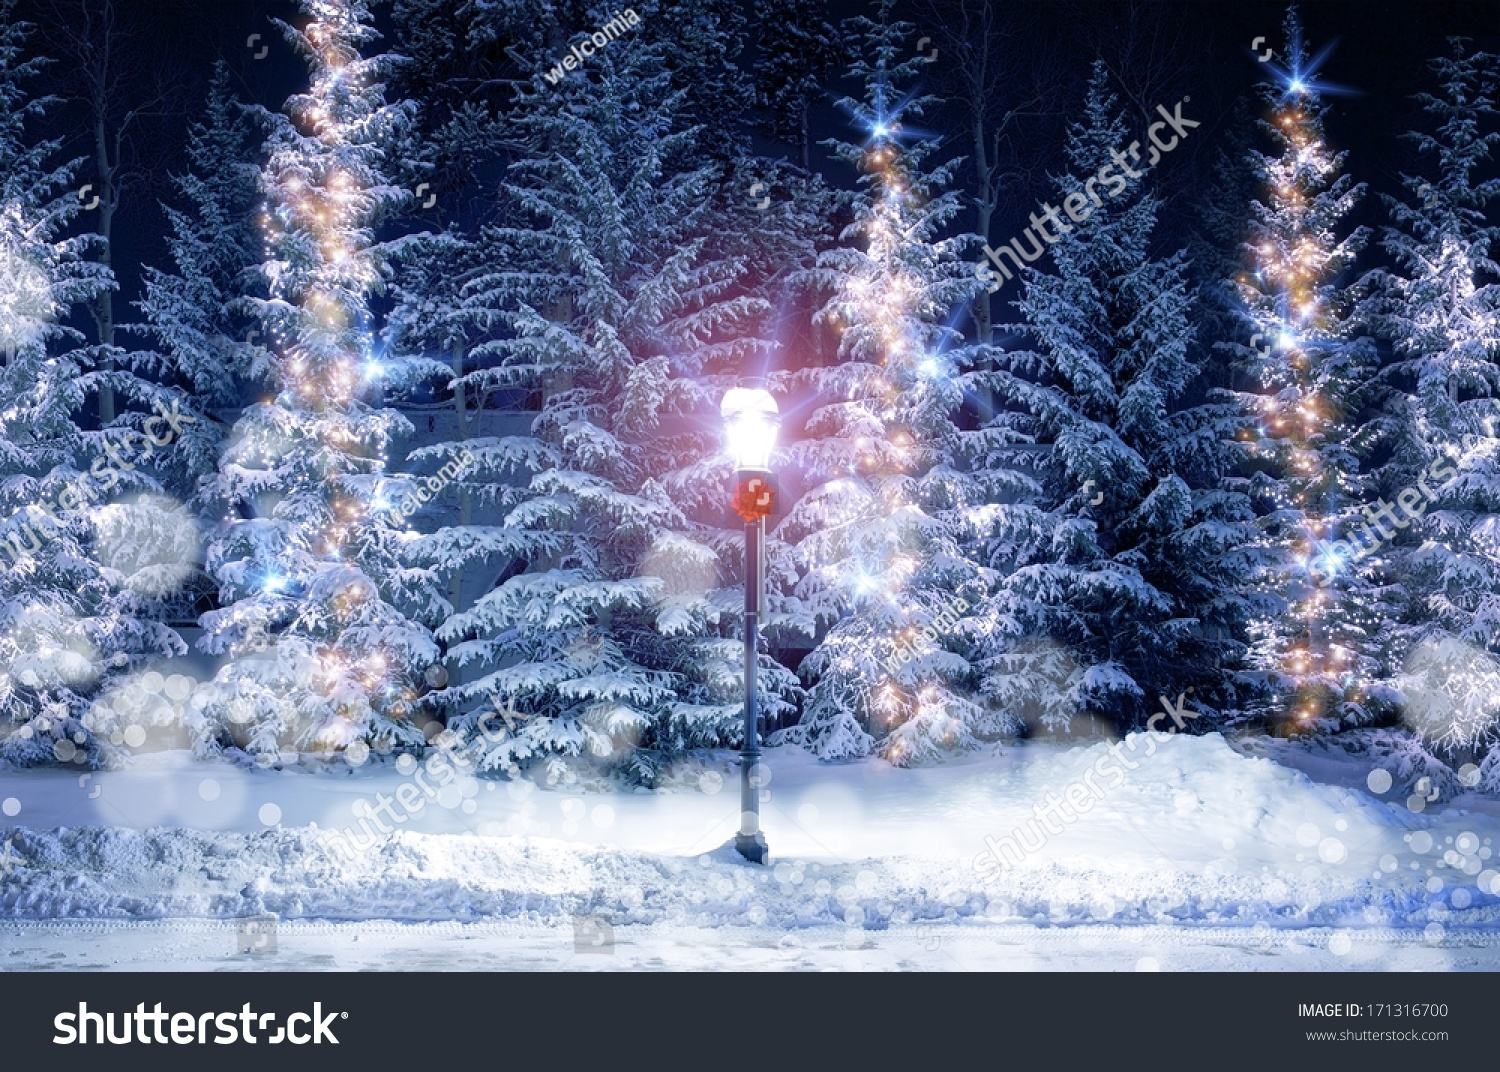 Mysterious Christmas Alley Bright Vintage Style Stock Photo ...